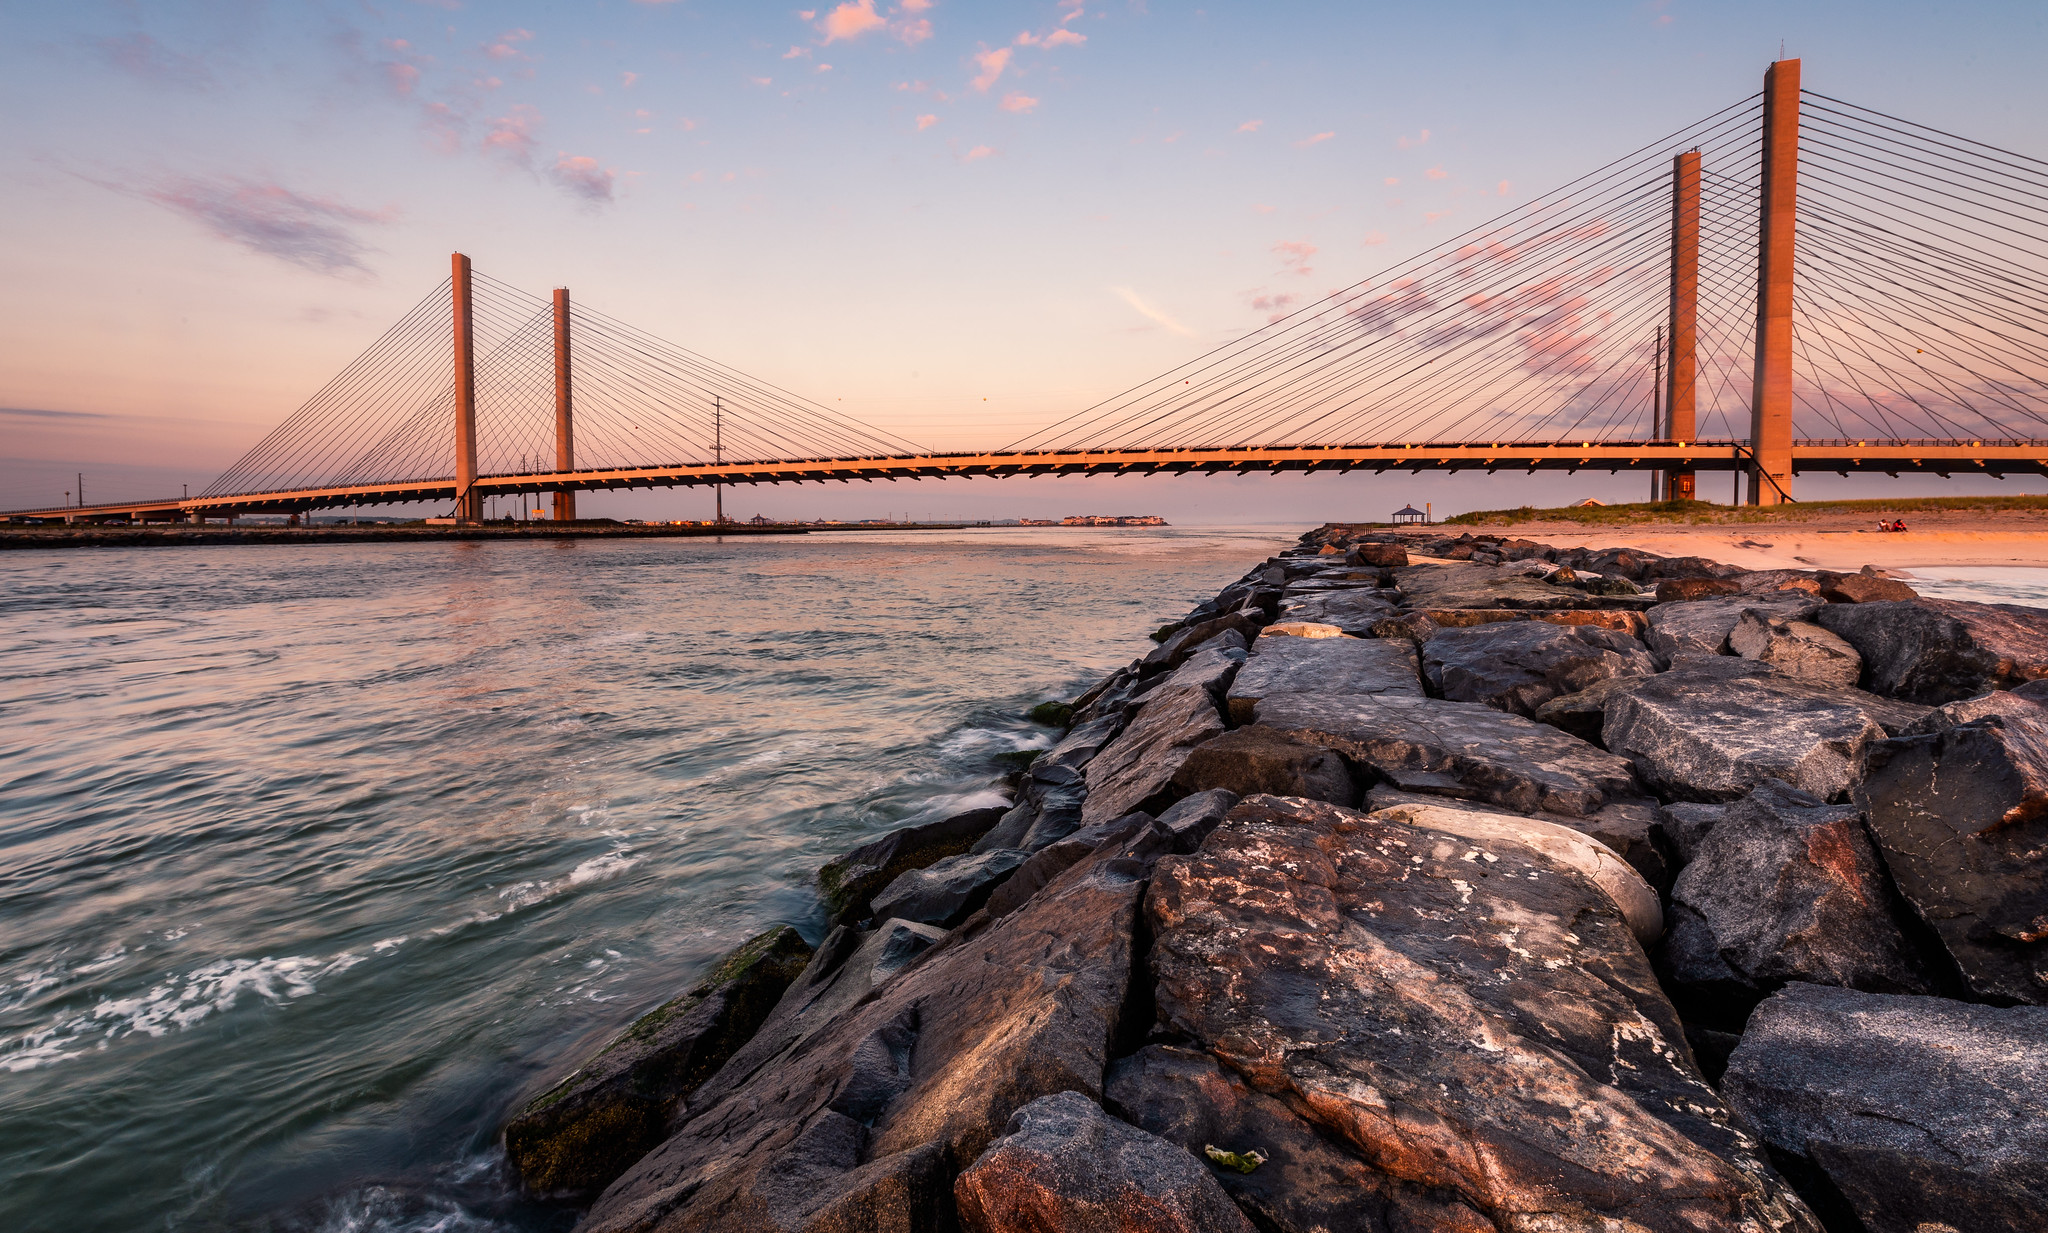 Delaware's Indian River Inlet Might Just Be The Best Place To Catch A Sunset